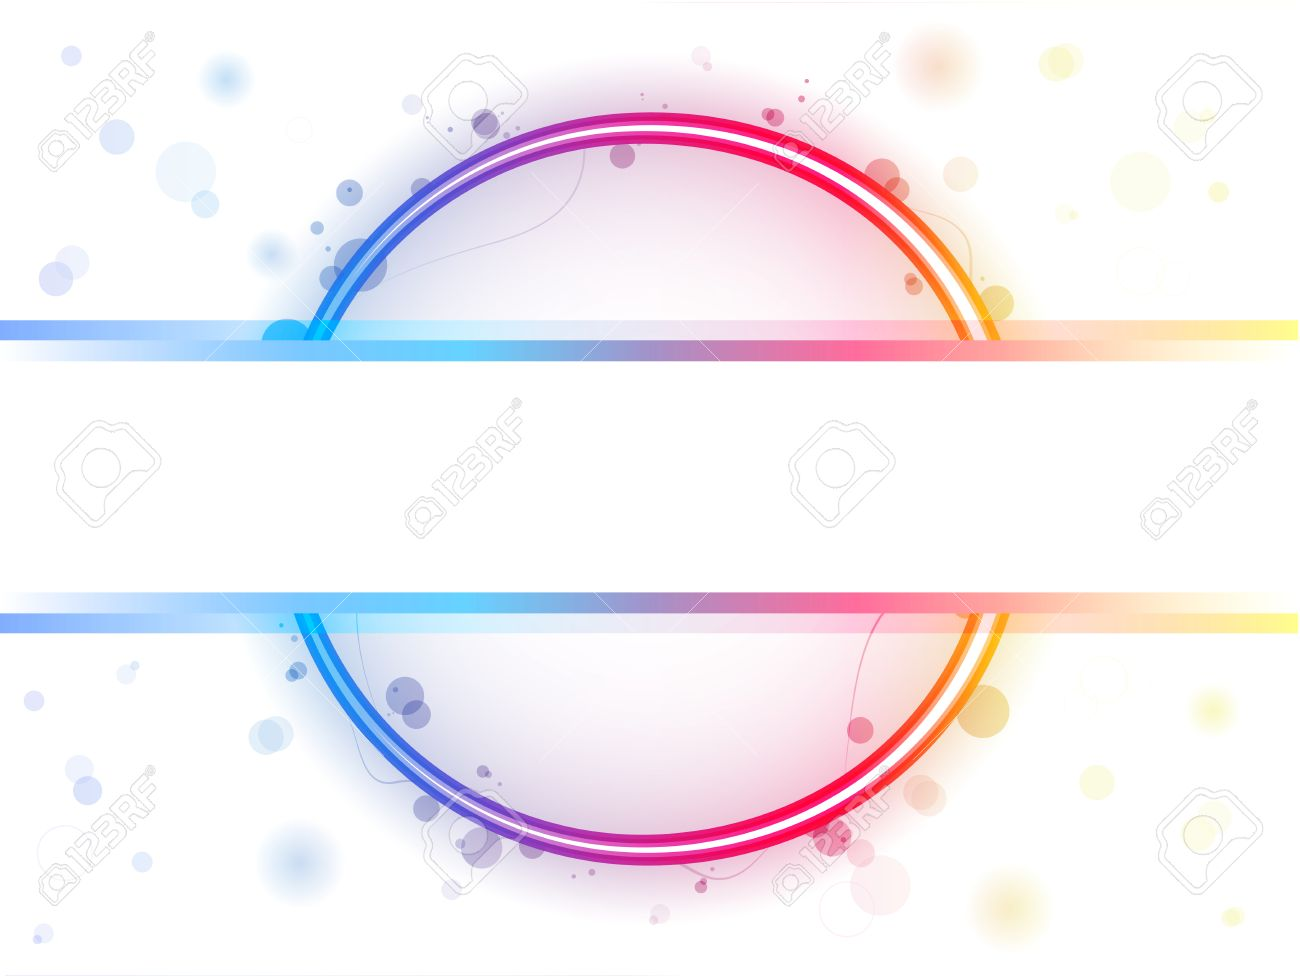 Rainbow Circle Border with Sparkles and Swirls Stock Vector - 7428377